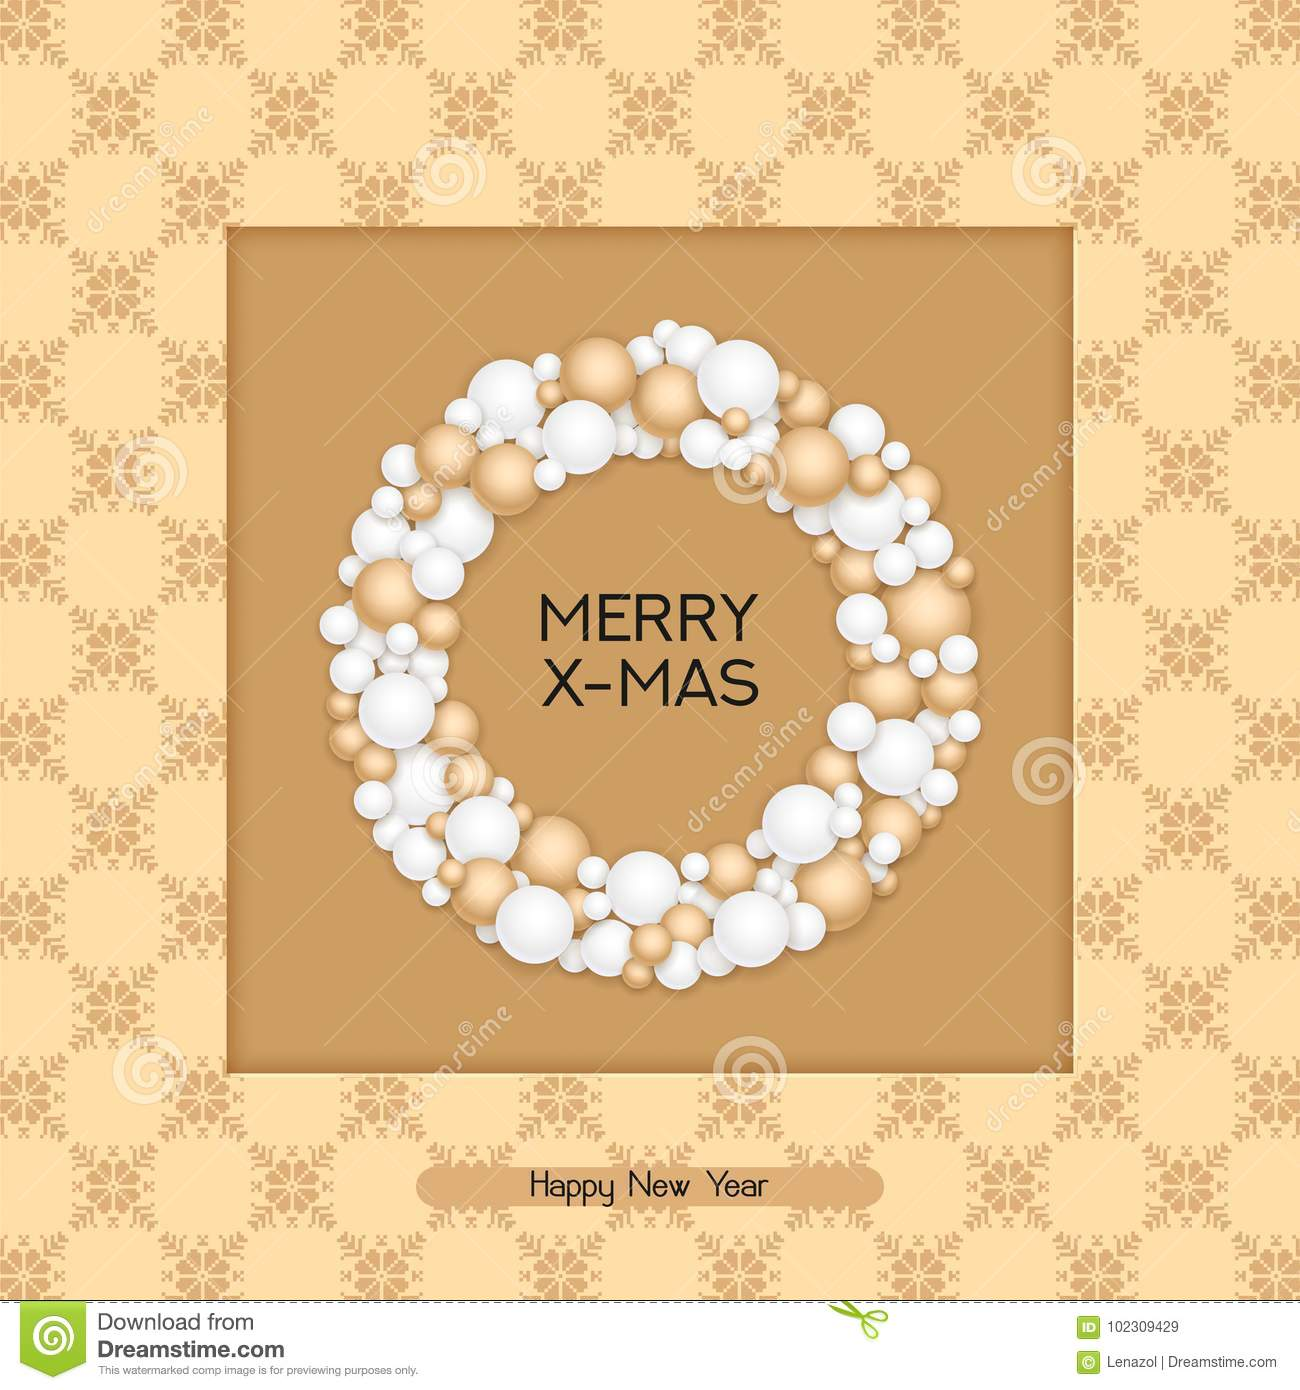 Vector Christmas Postcard With Greeting Words, Winter Ornament And ...